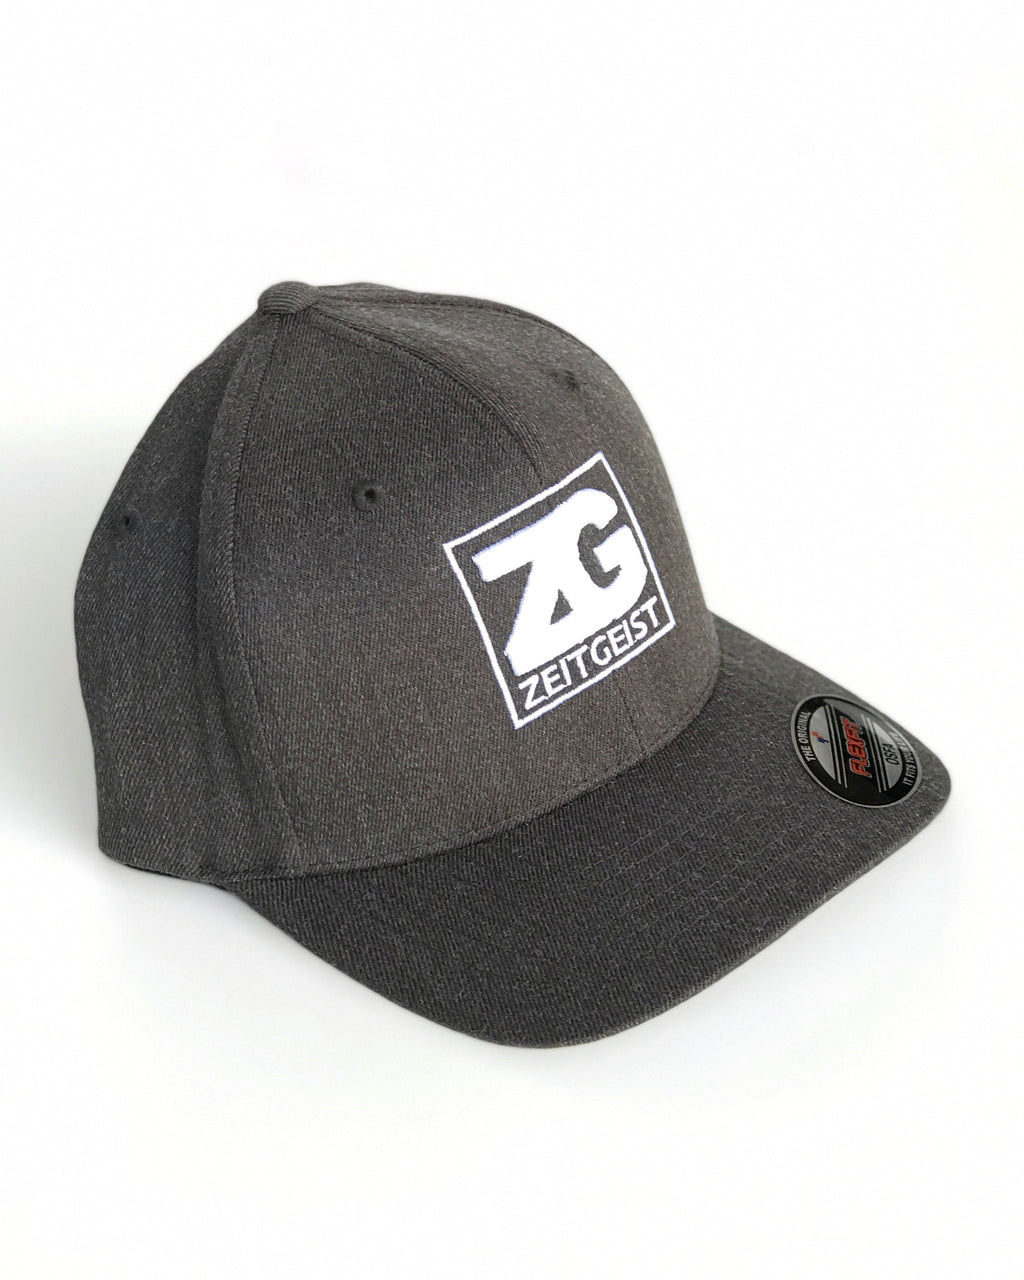 Zeitgeist Cap Dark Heather with White Logo ZG5164